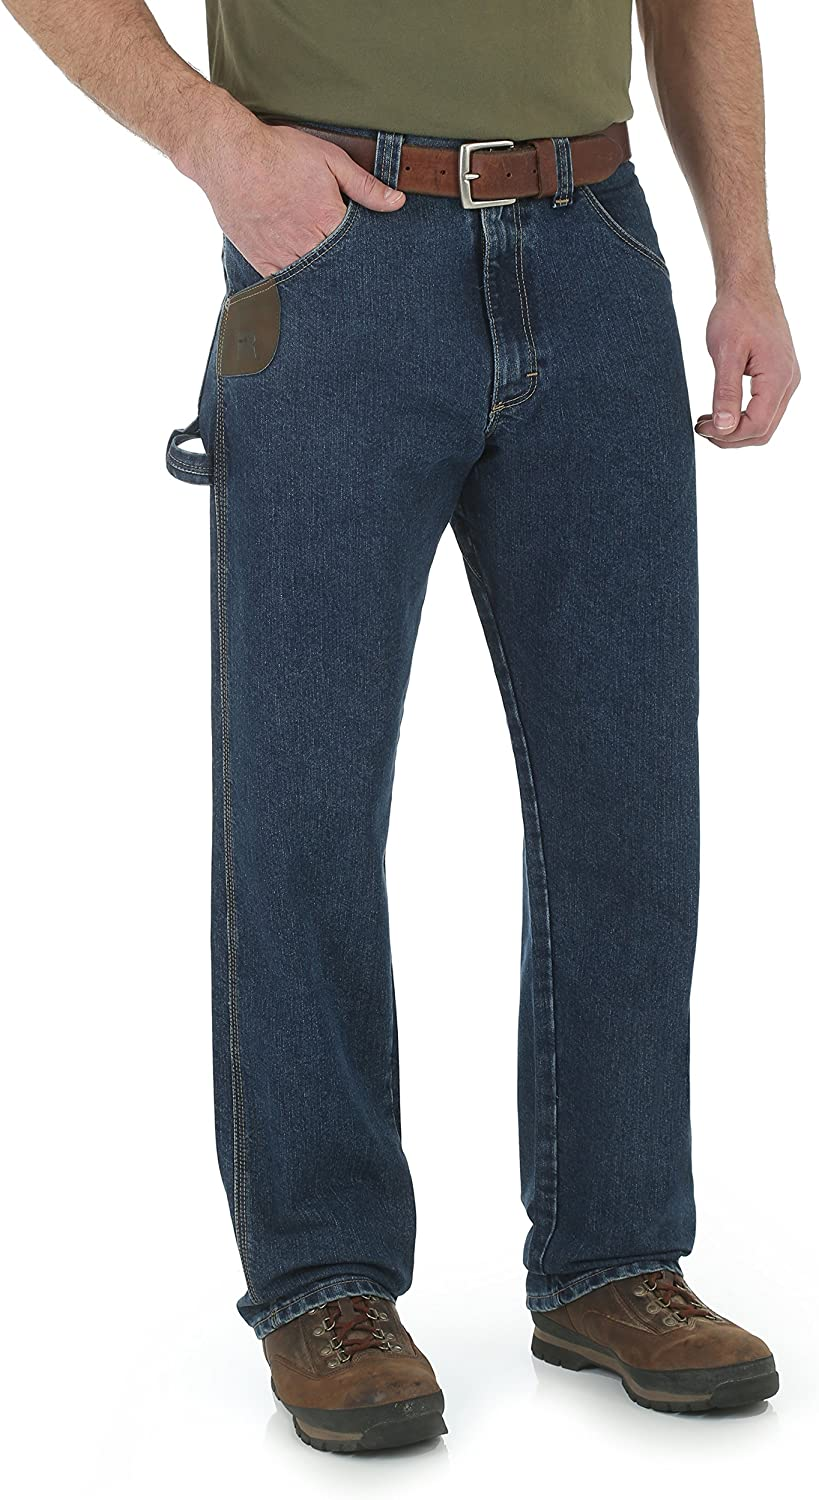 Wrangler Riggs Workwear Men's Jean Cool sold out Vantage Carpenter Max 61% OFF